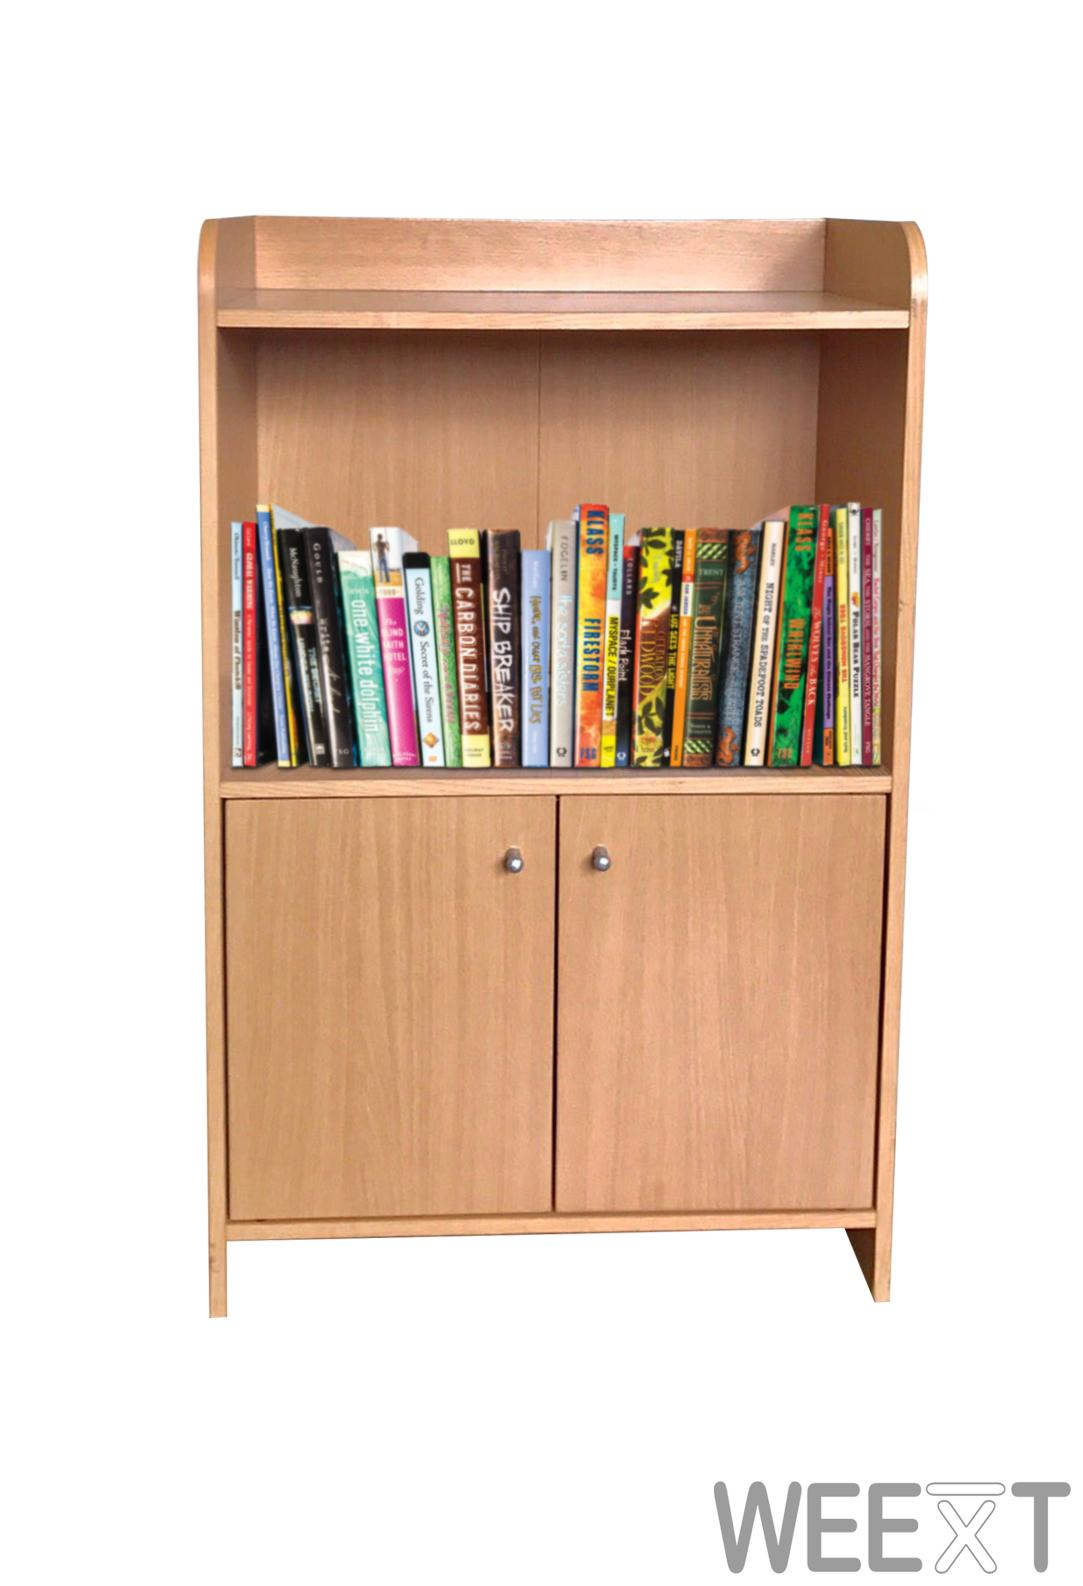 Weext Storage Shelf With 2 Door Natural By Weext Trading Corp Warehouse.